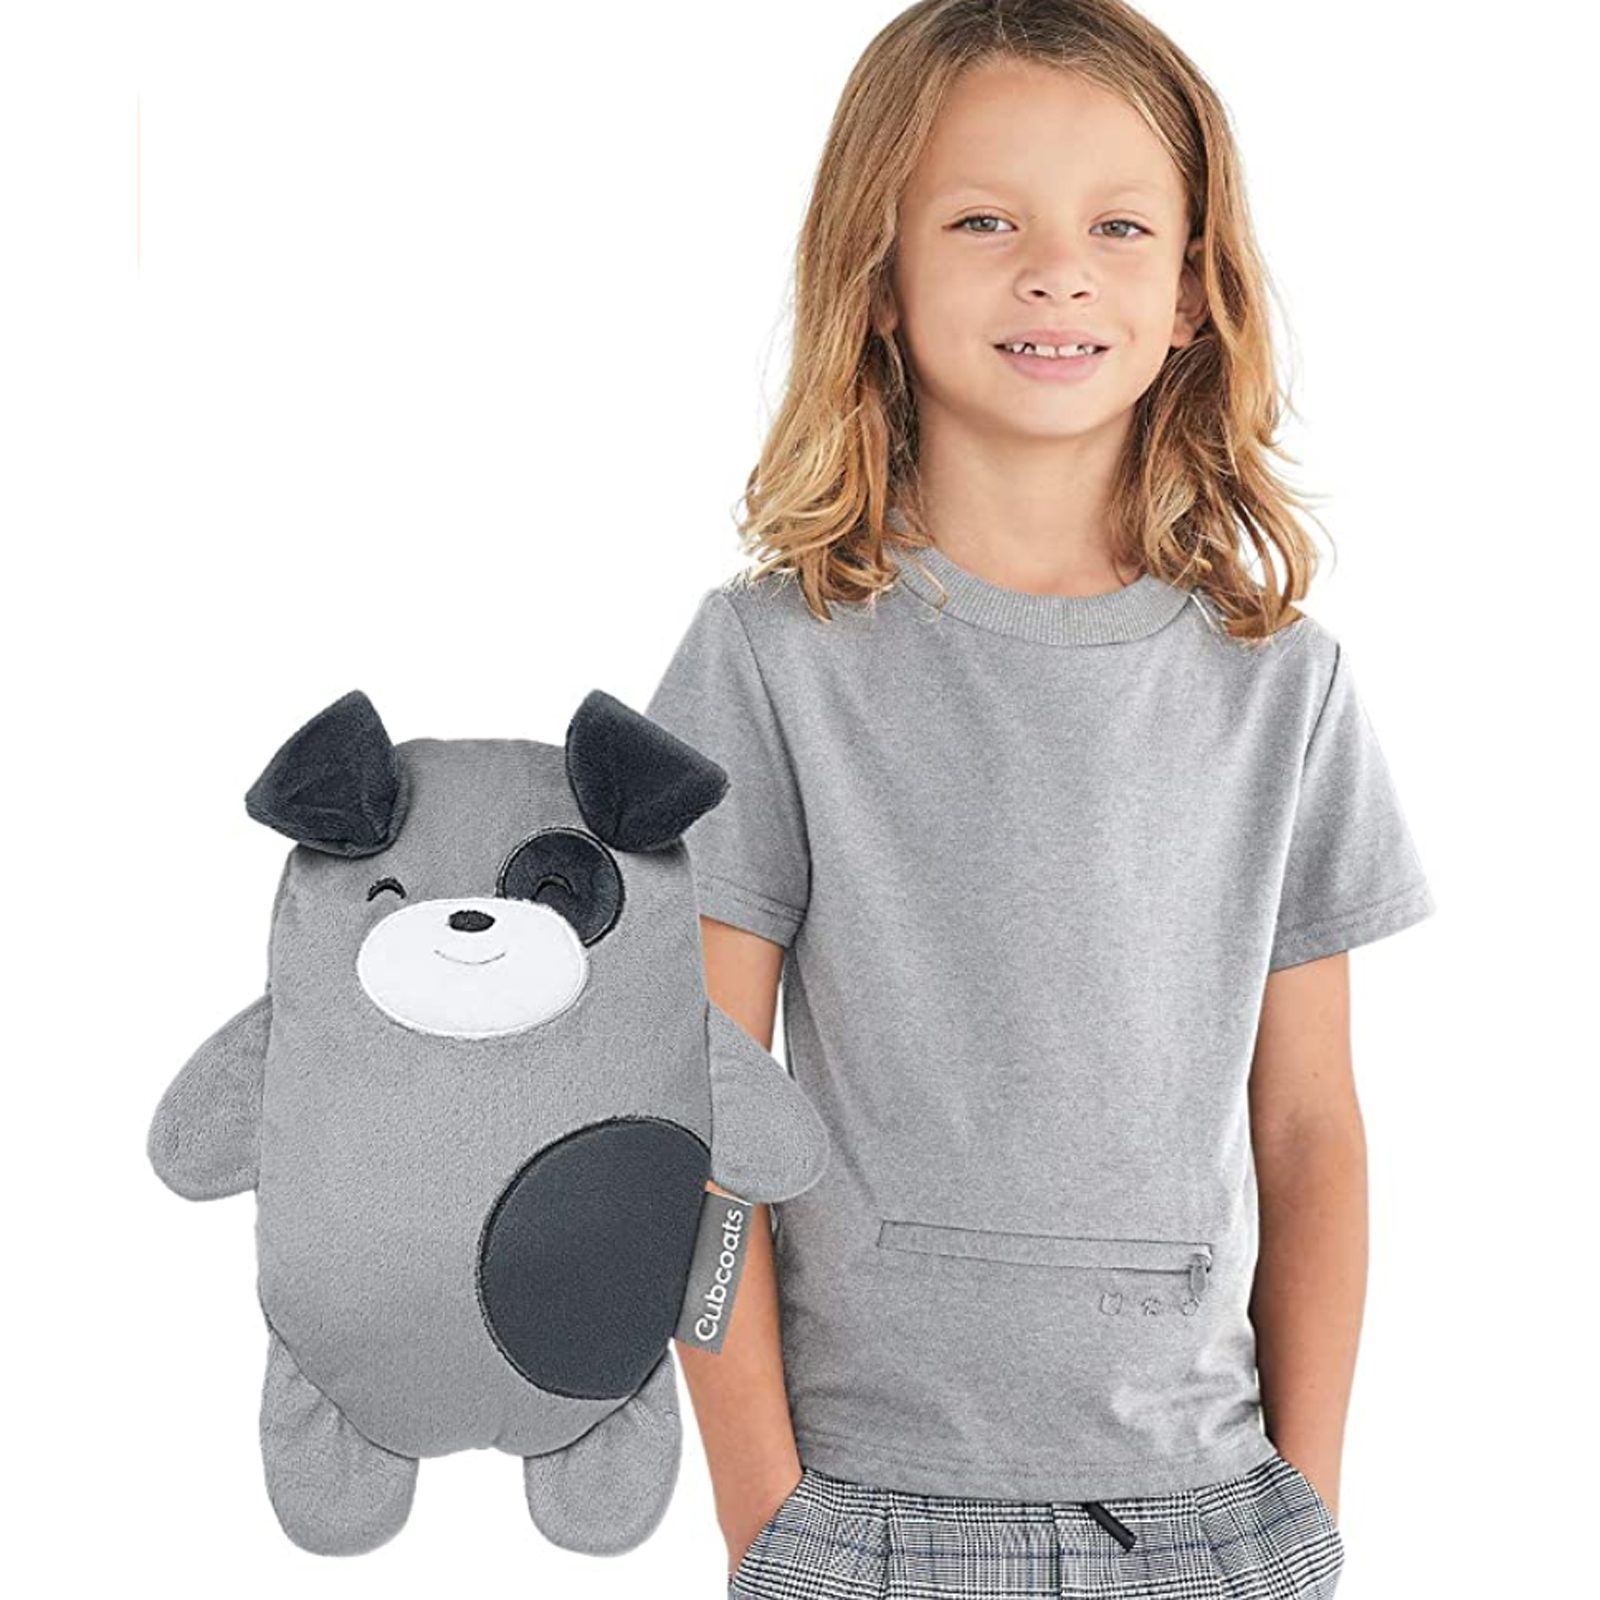 Cubcoats Pimm The Puppy 2-in-1 Transforming Tee